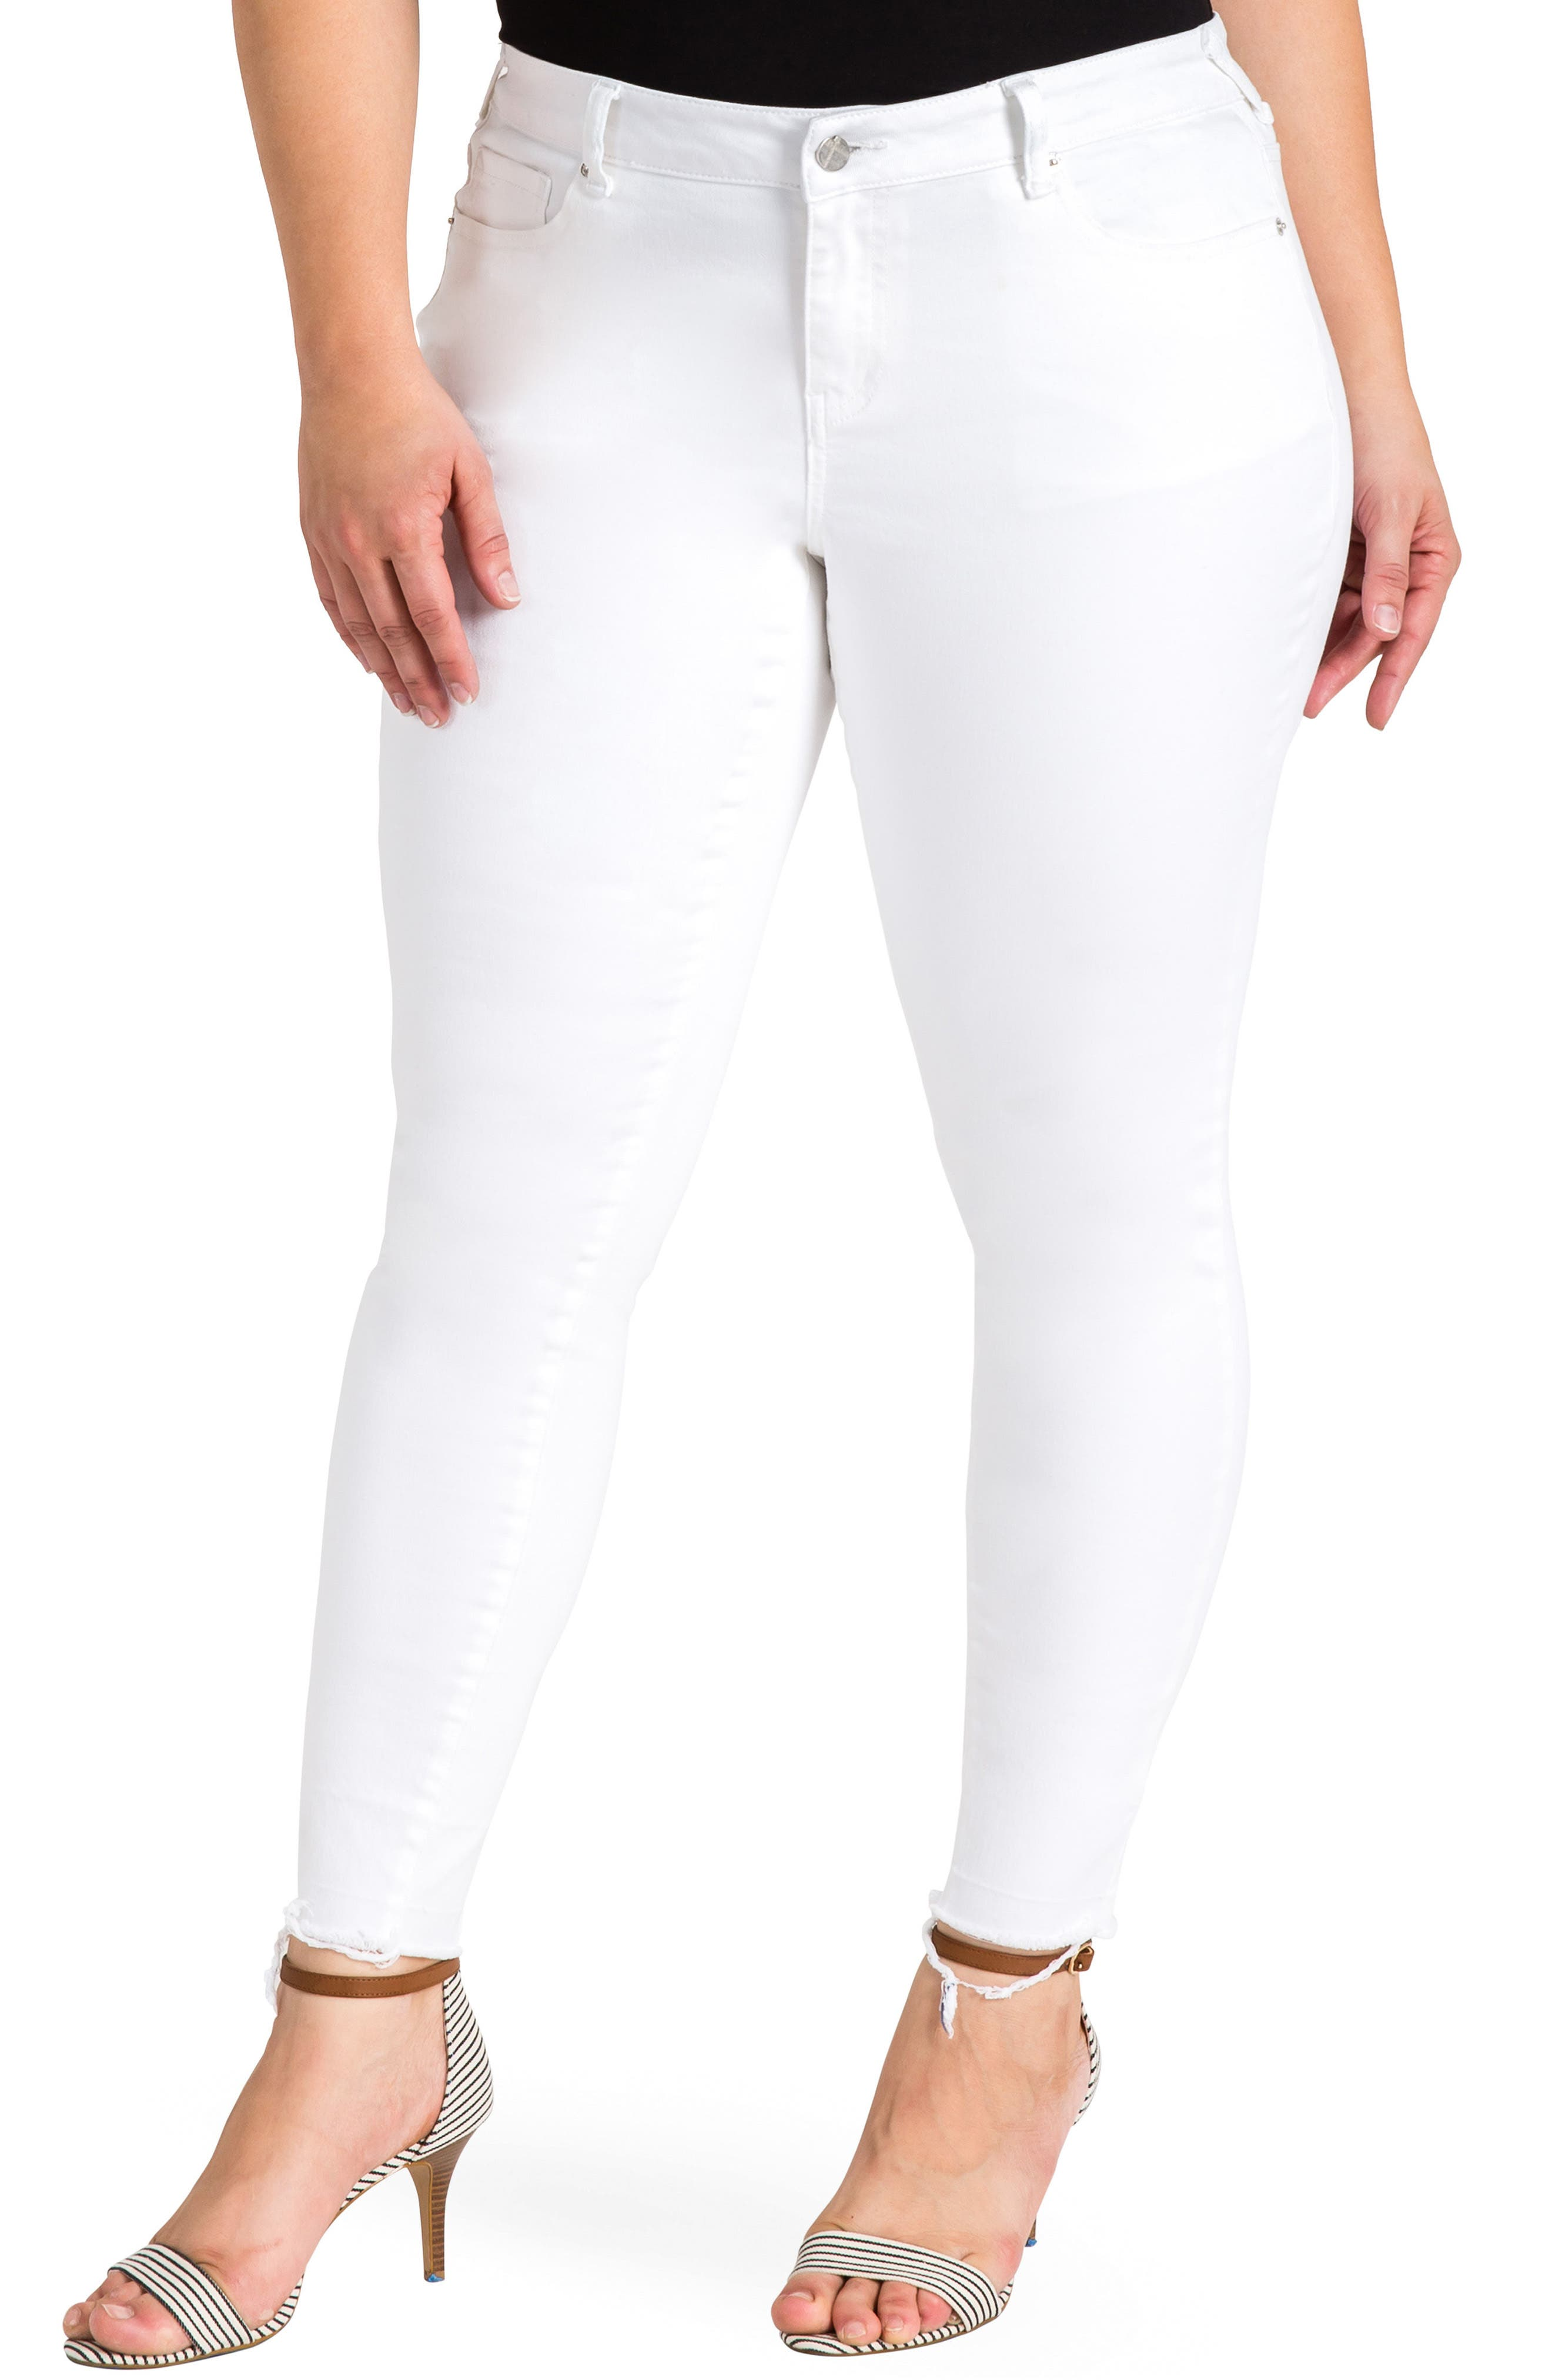 Virginia Ankle Skinny Jeans,                         Main,                         color, 3087POWDERWT - WHITE